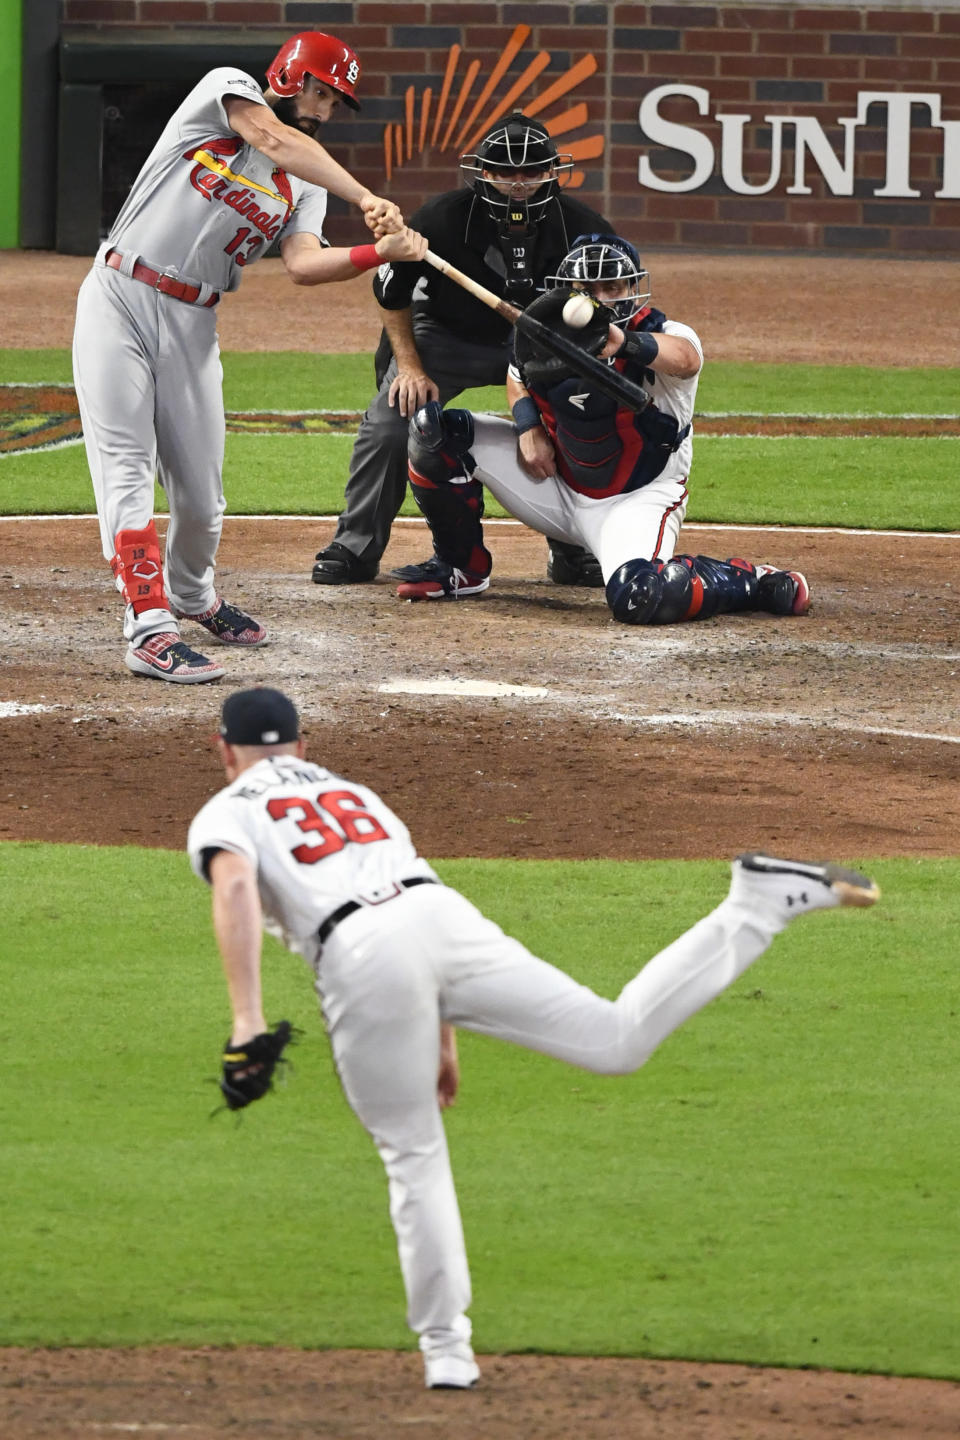 St. Louis Cardinals third baseman Matt Carpenter (13) hits against the Atlanta Braves in the eighth inning during Game 1 of a best-of-five National League Division Series, Thursday, Oct. 3, 2019, in Atlanta. (AP Photo/Scott Cunningham)